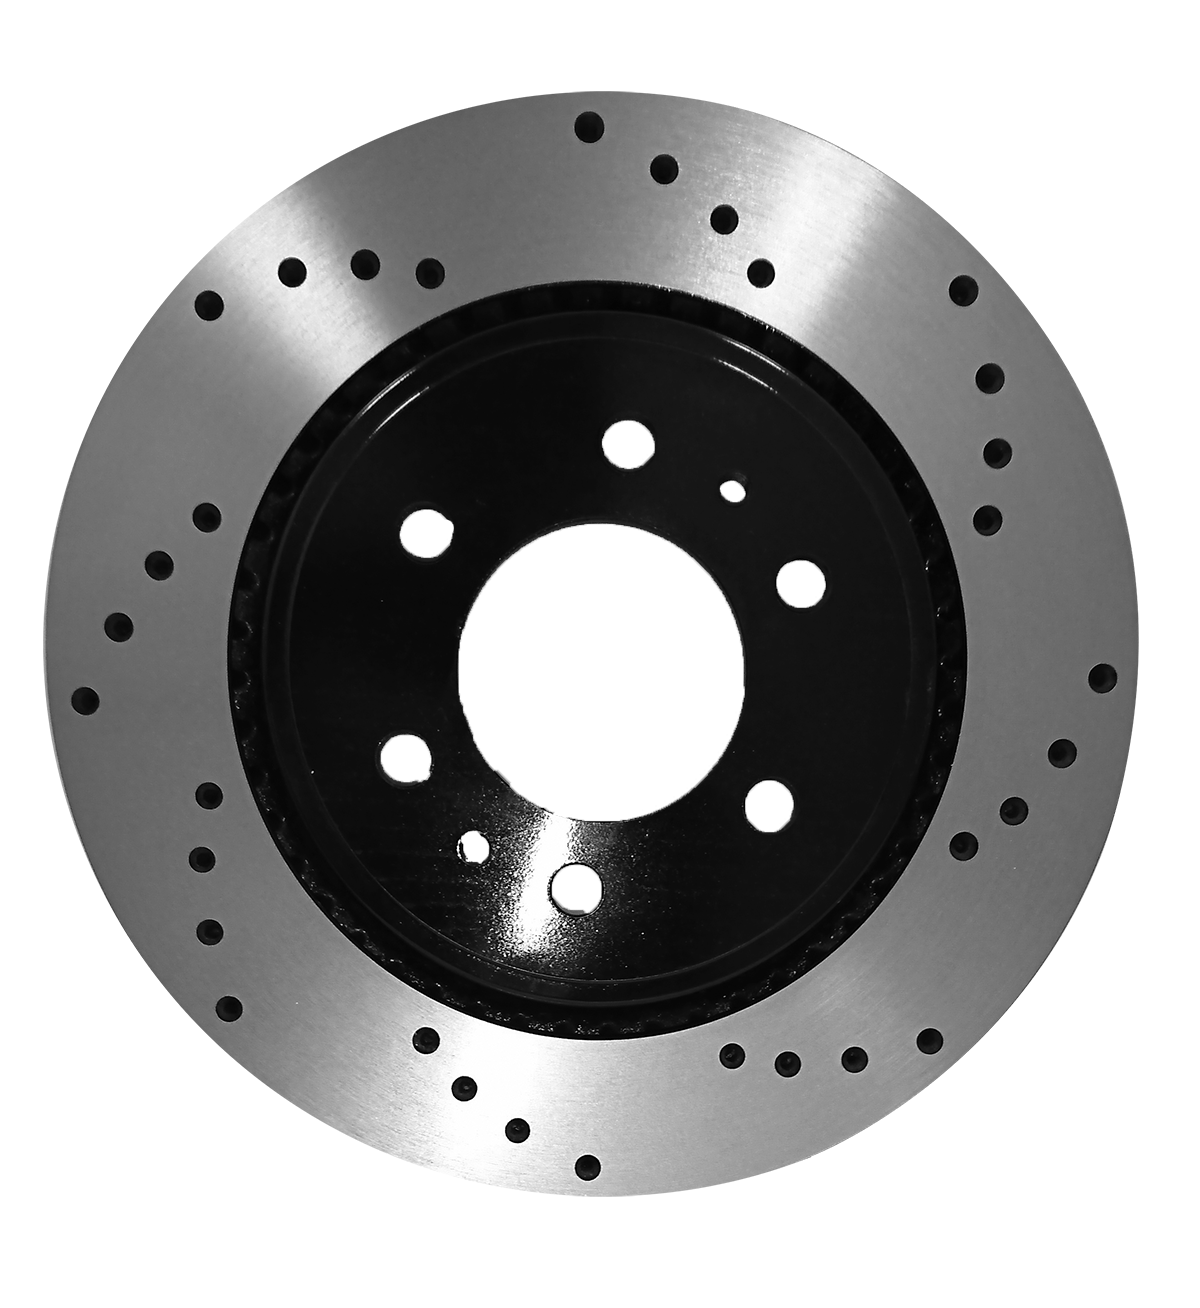 [Front E-Coat Drilled Brake Rotors Ceramic Pads] Fit 08-15 Chevrolet Tahoe - image 2 of 2